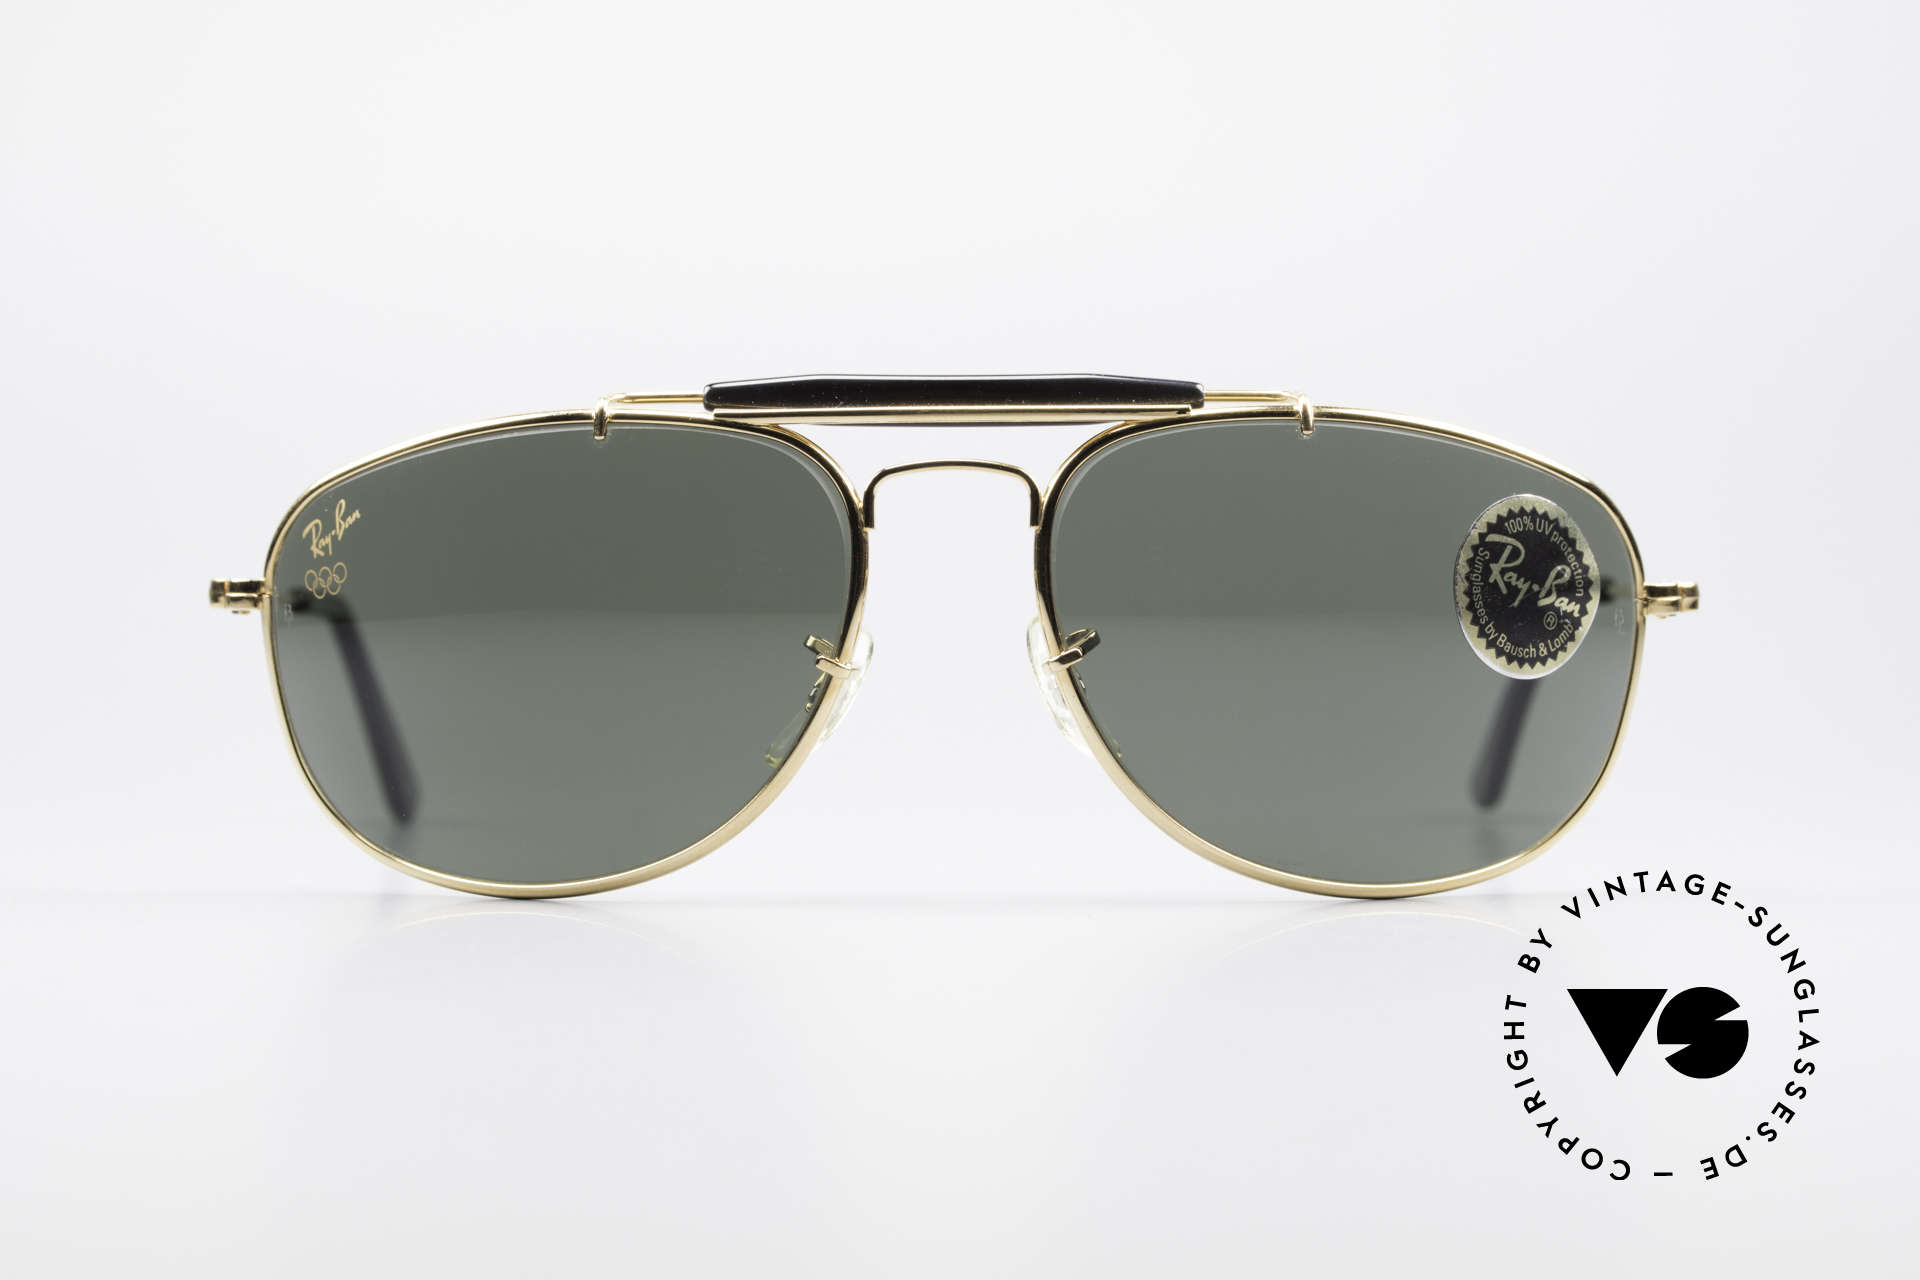 Ray Ban Sport Metal 1992 Rare Olympic Series B&L USA, size 61°15 with legendary Bausch&Lomb mineral lenses, Made for Men